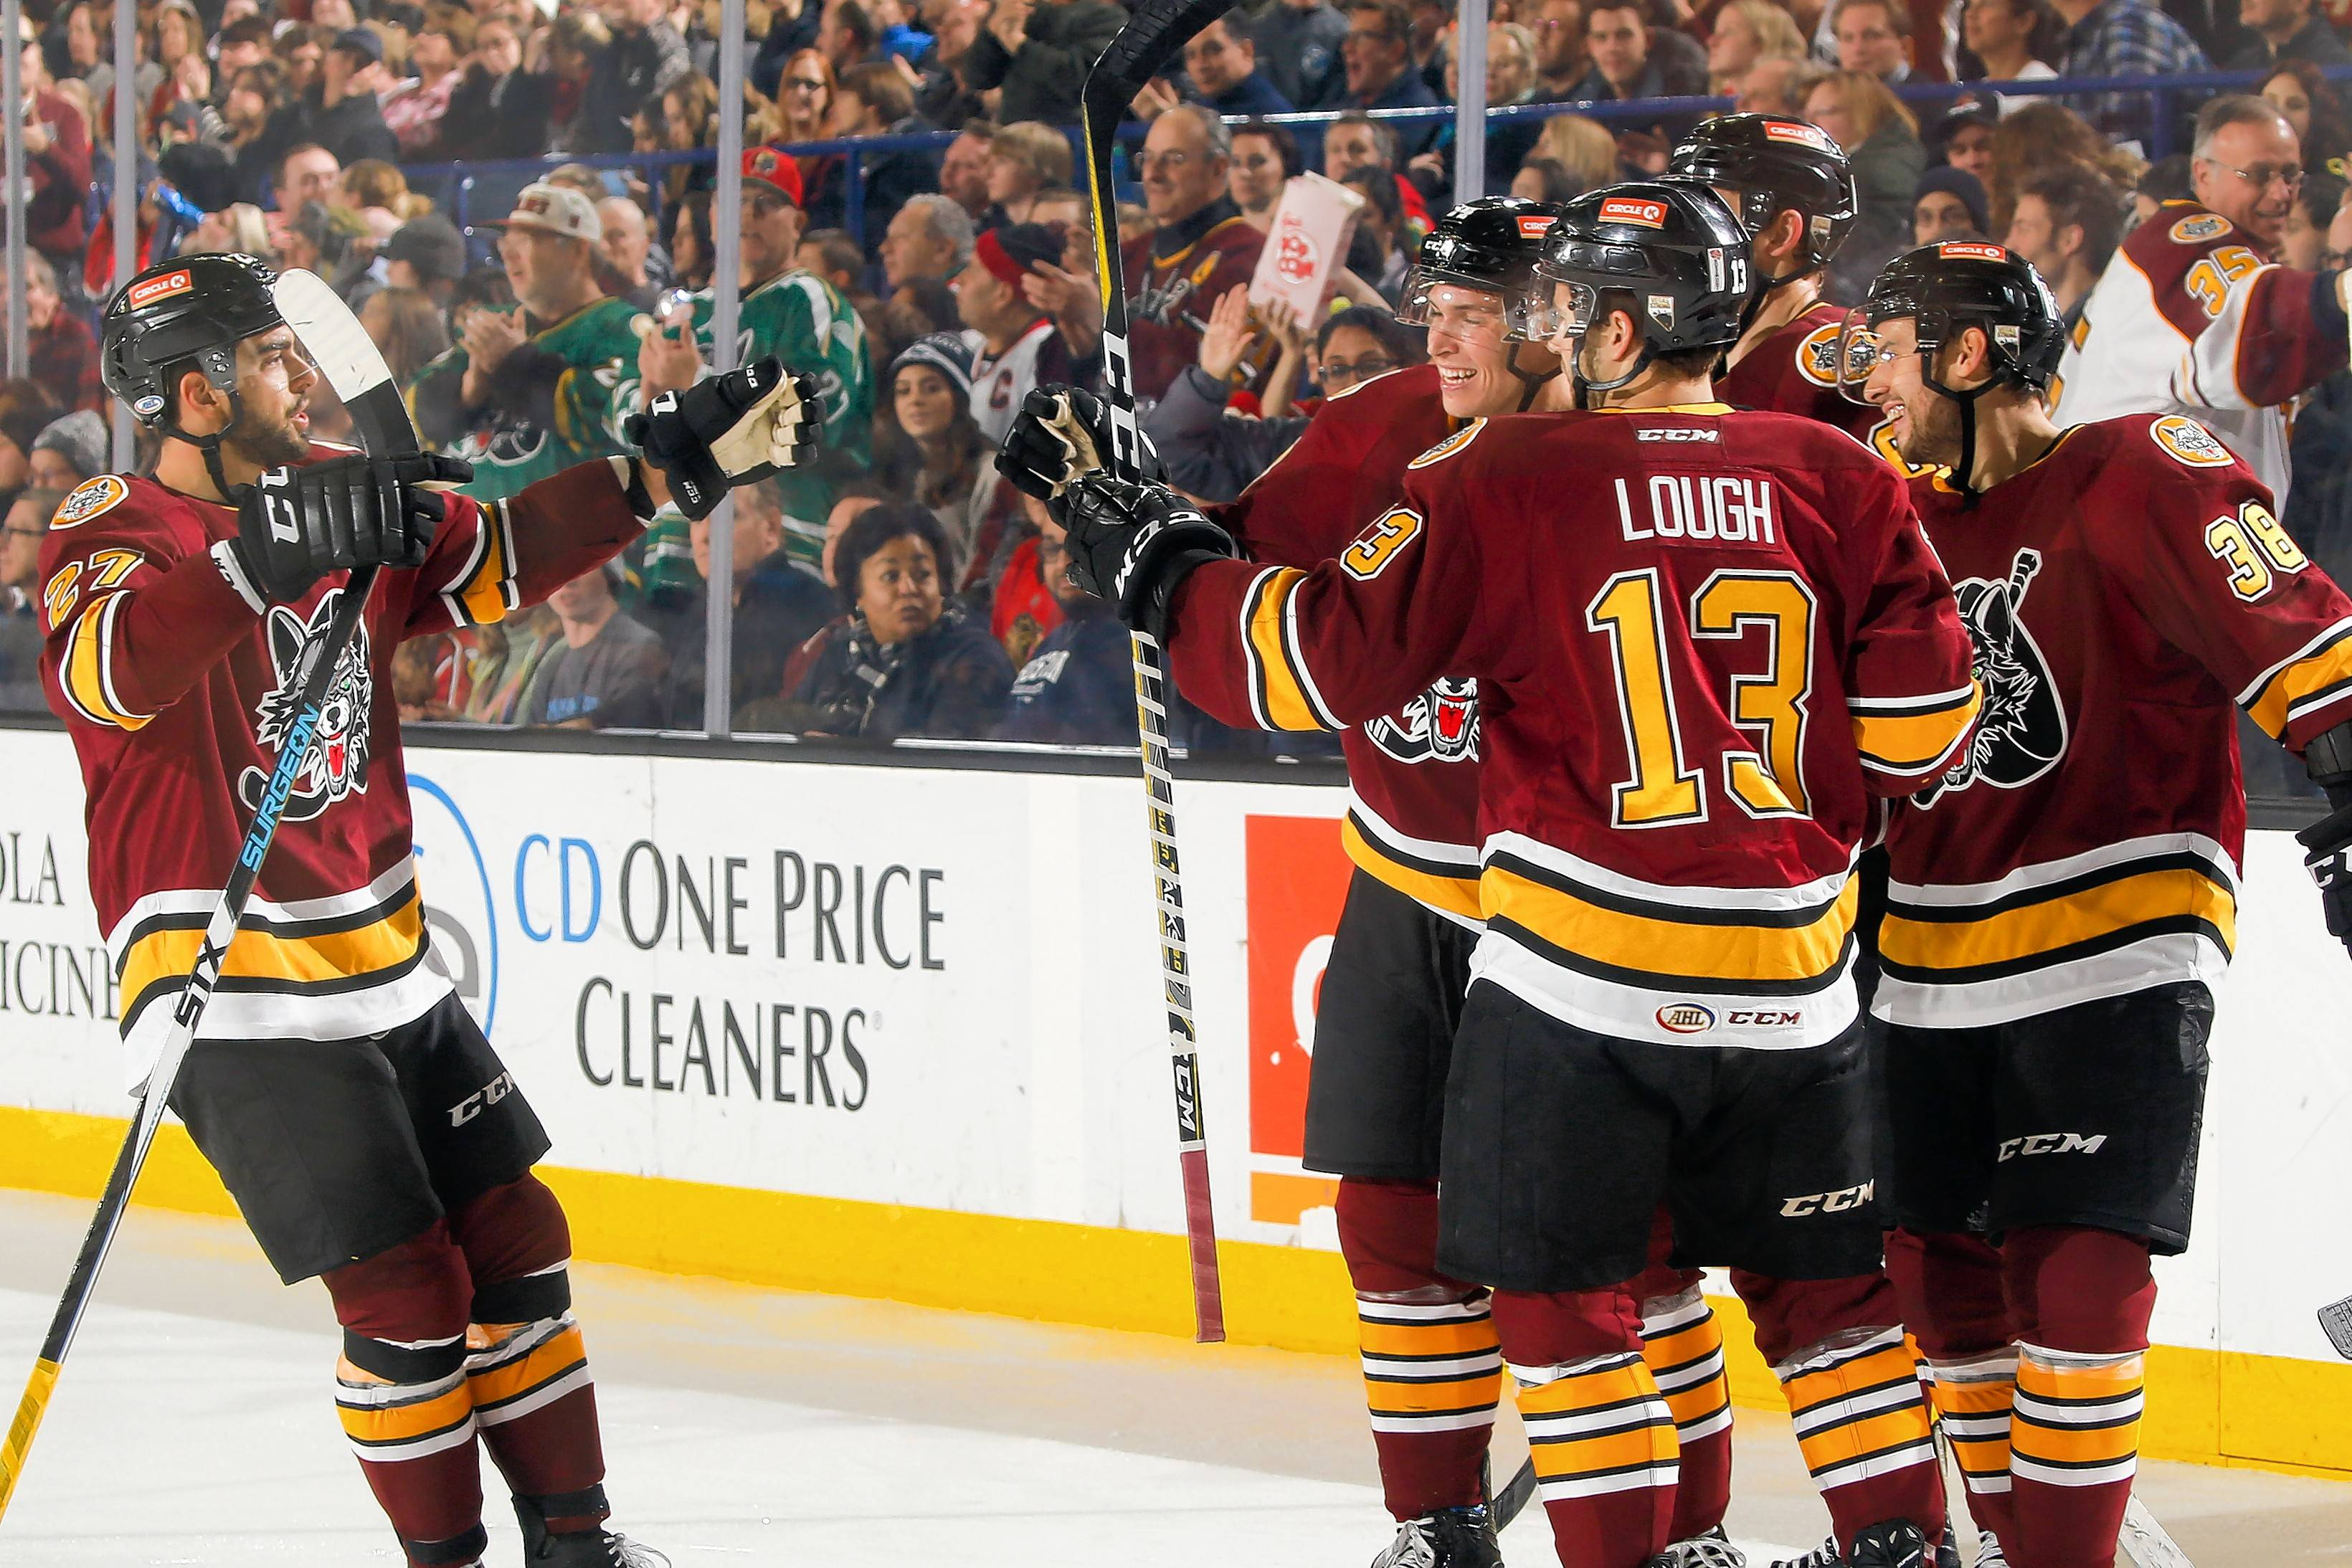 The Chicago Wolves will look to defend their Central Division title again this season.